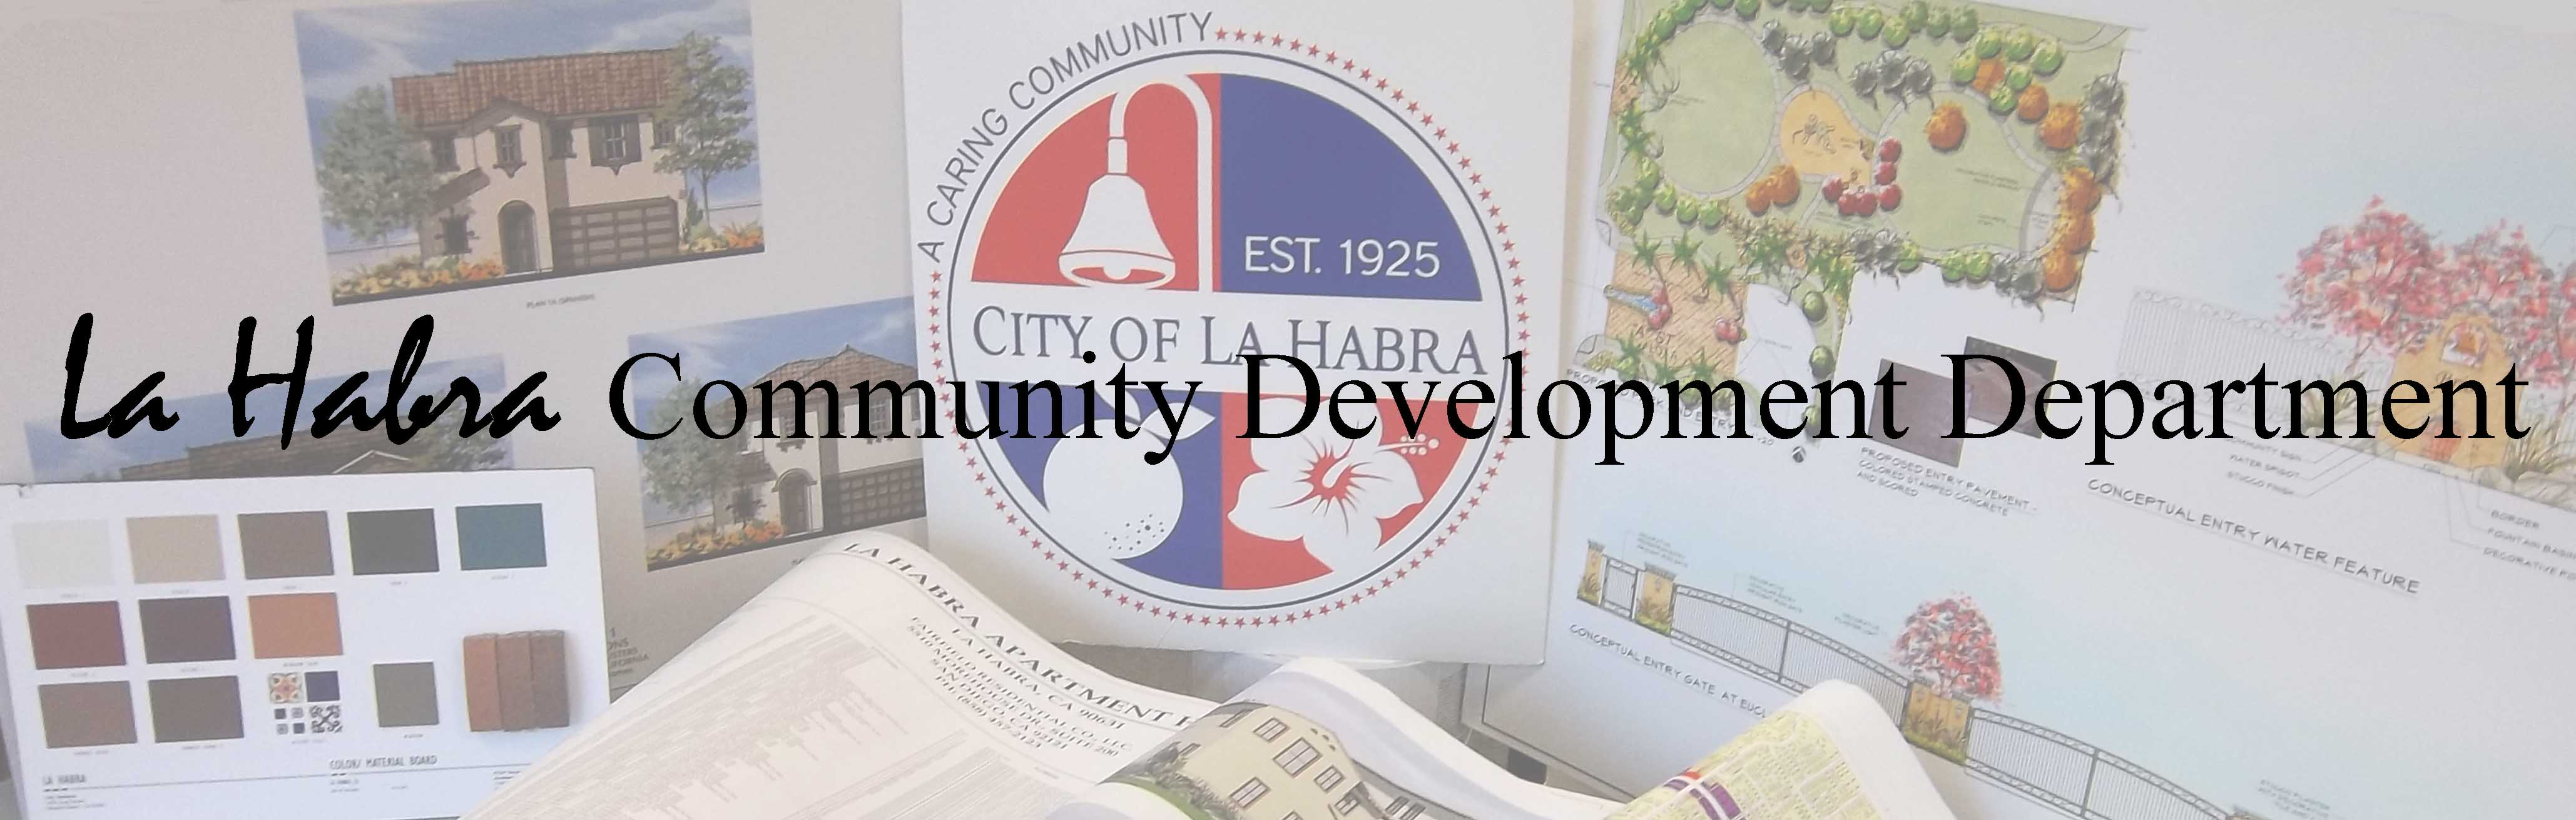 Community Development FINAL